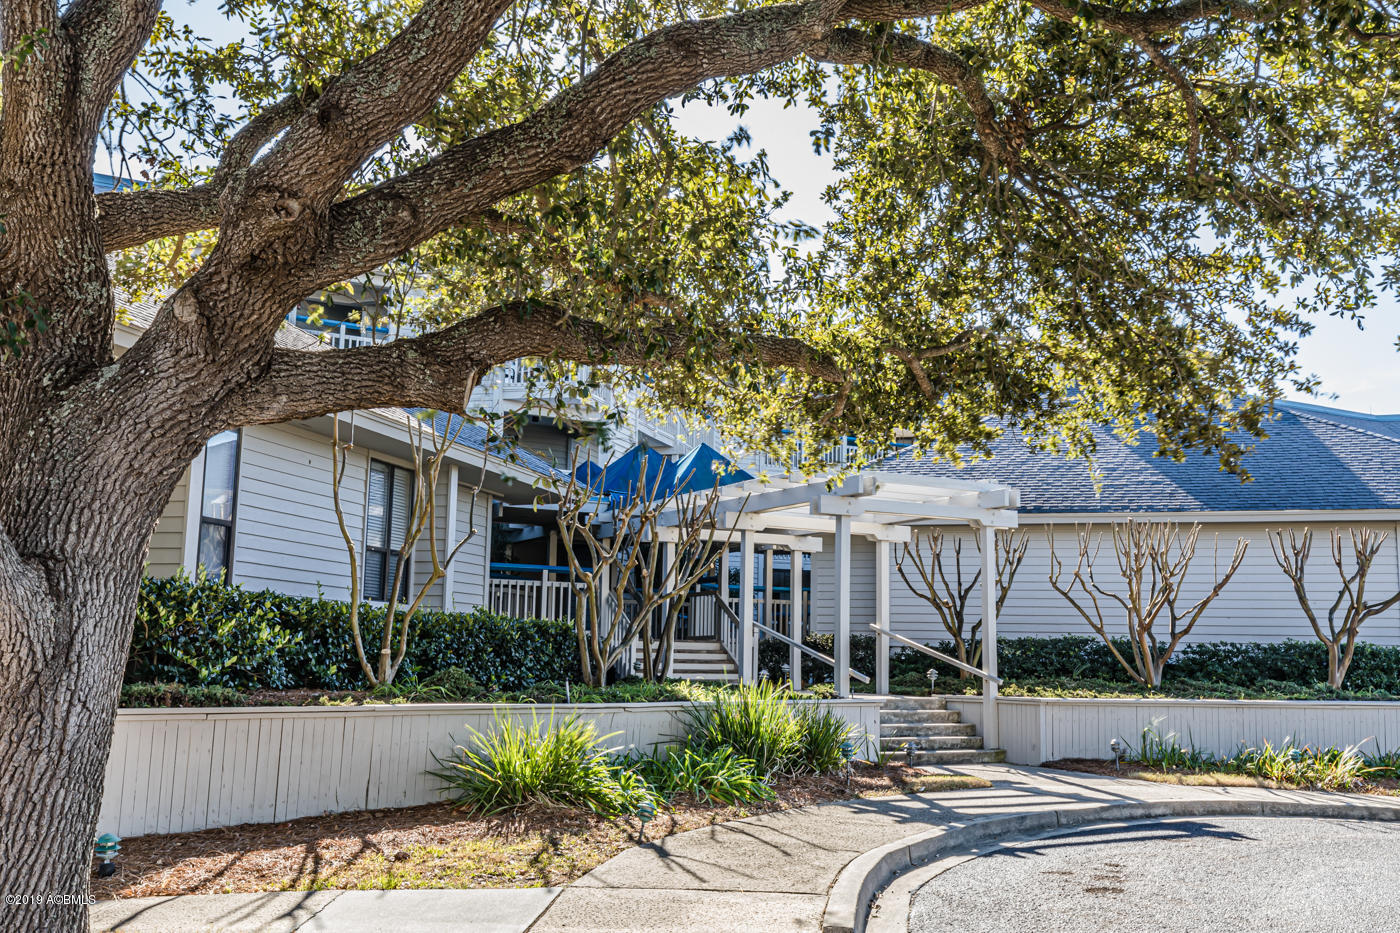 Photo of L307 Beach House #L307, Harbor Island, SC 29920